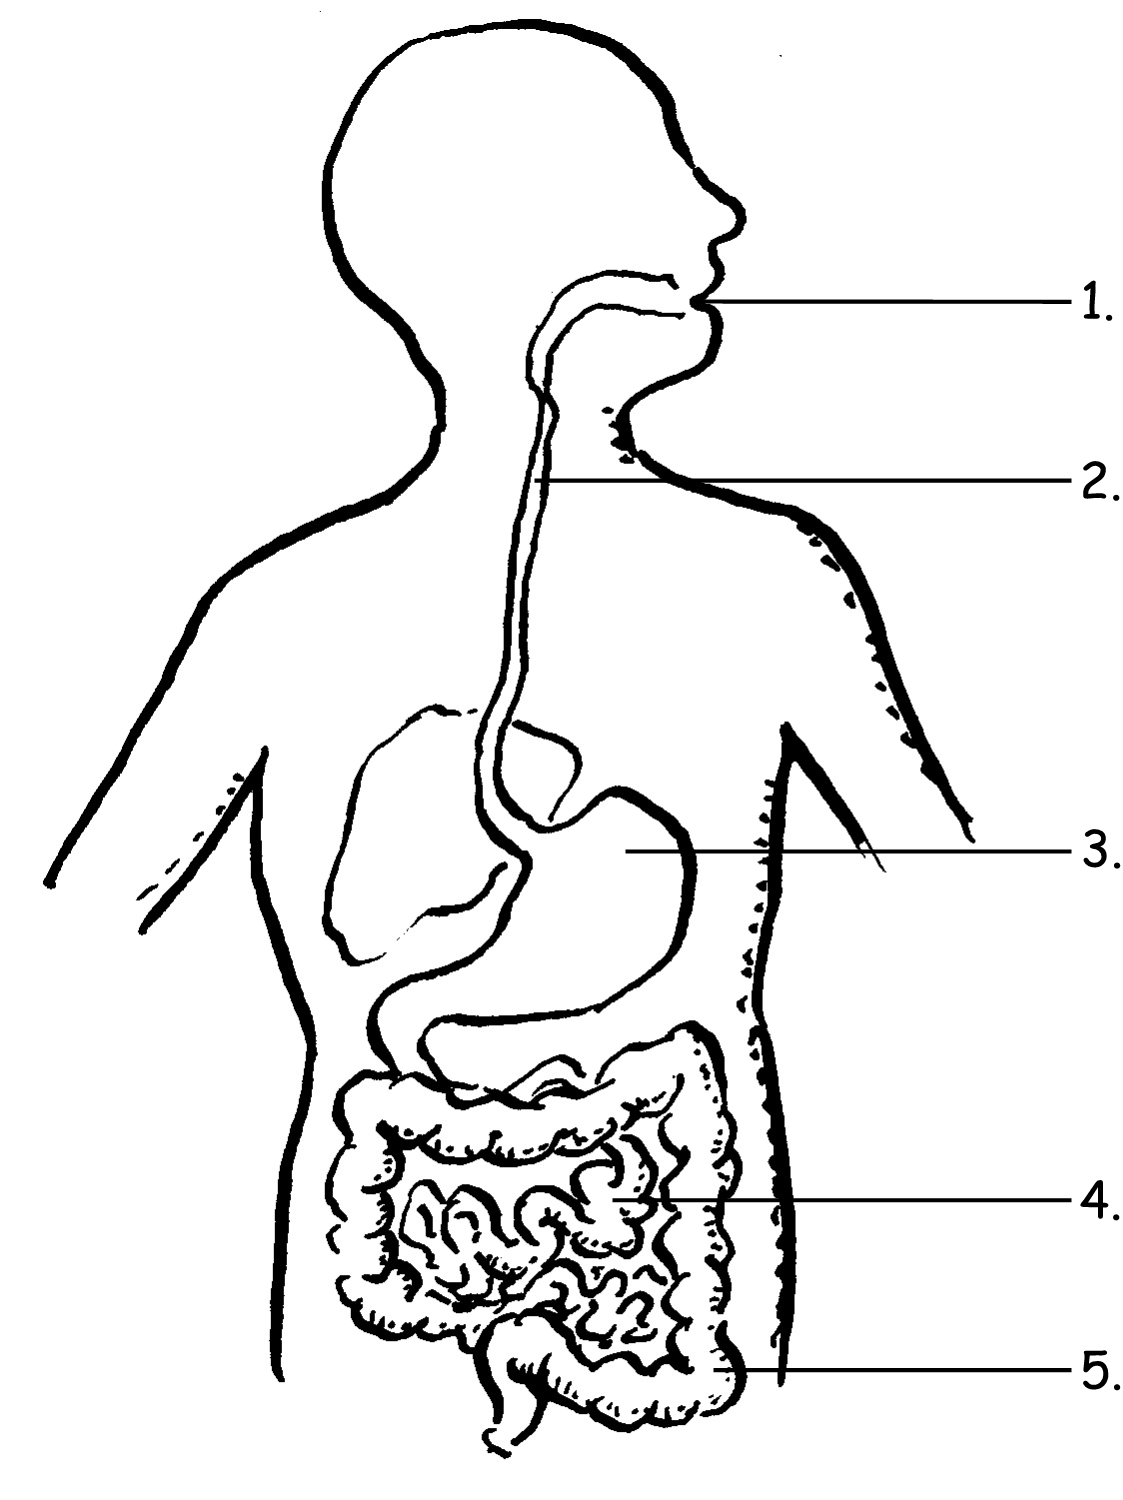 Digestive System Drawing